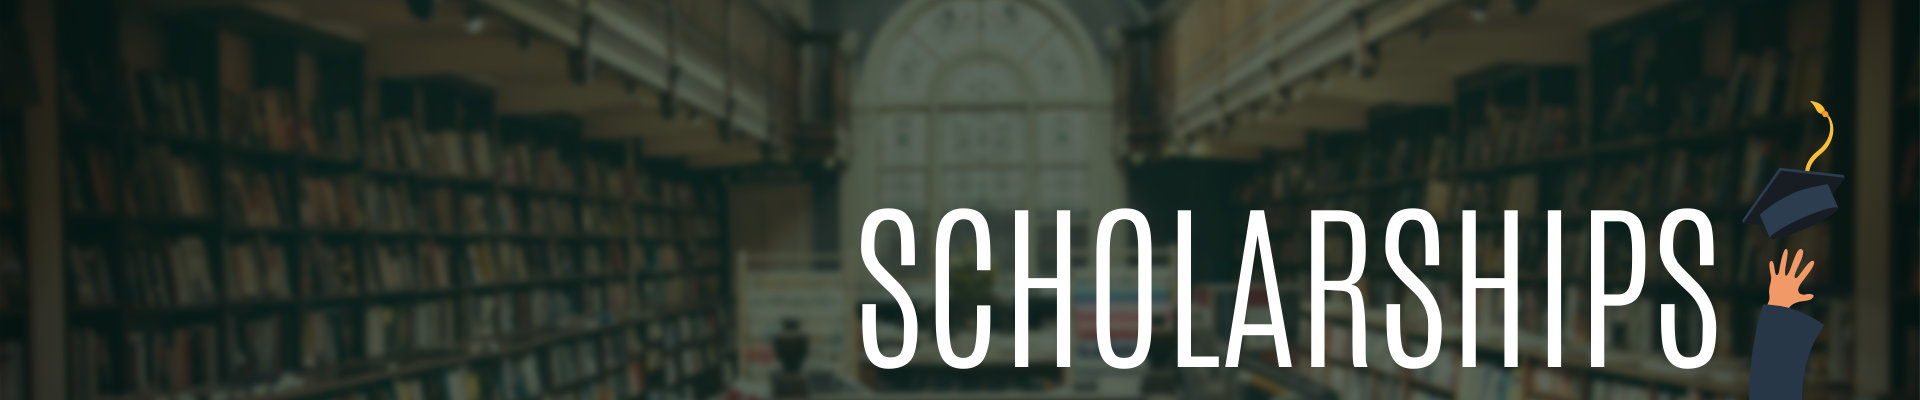 Scholarships Page Header